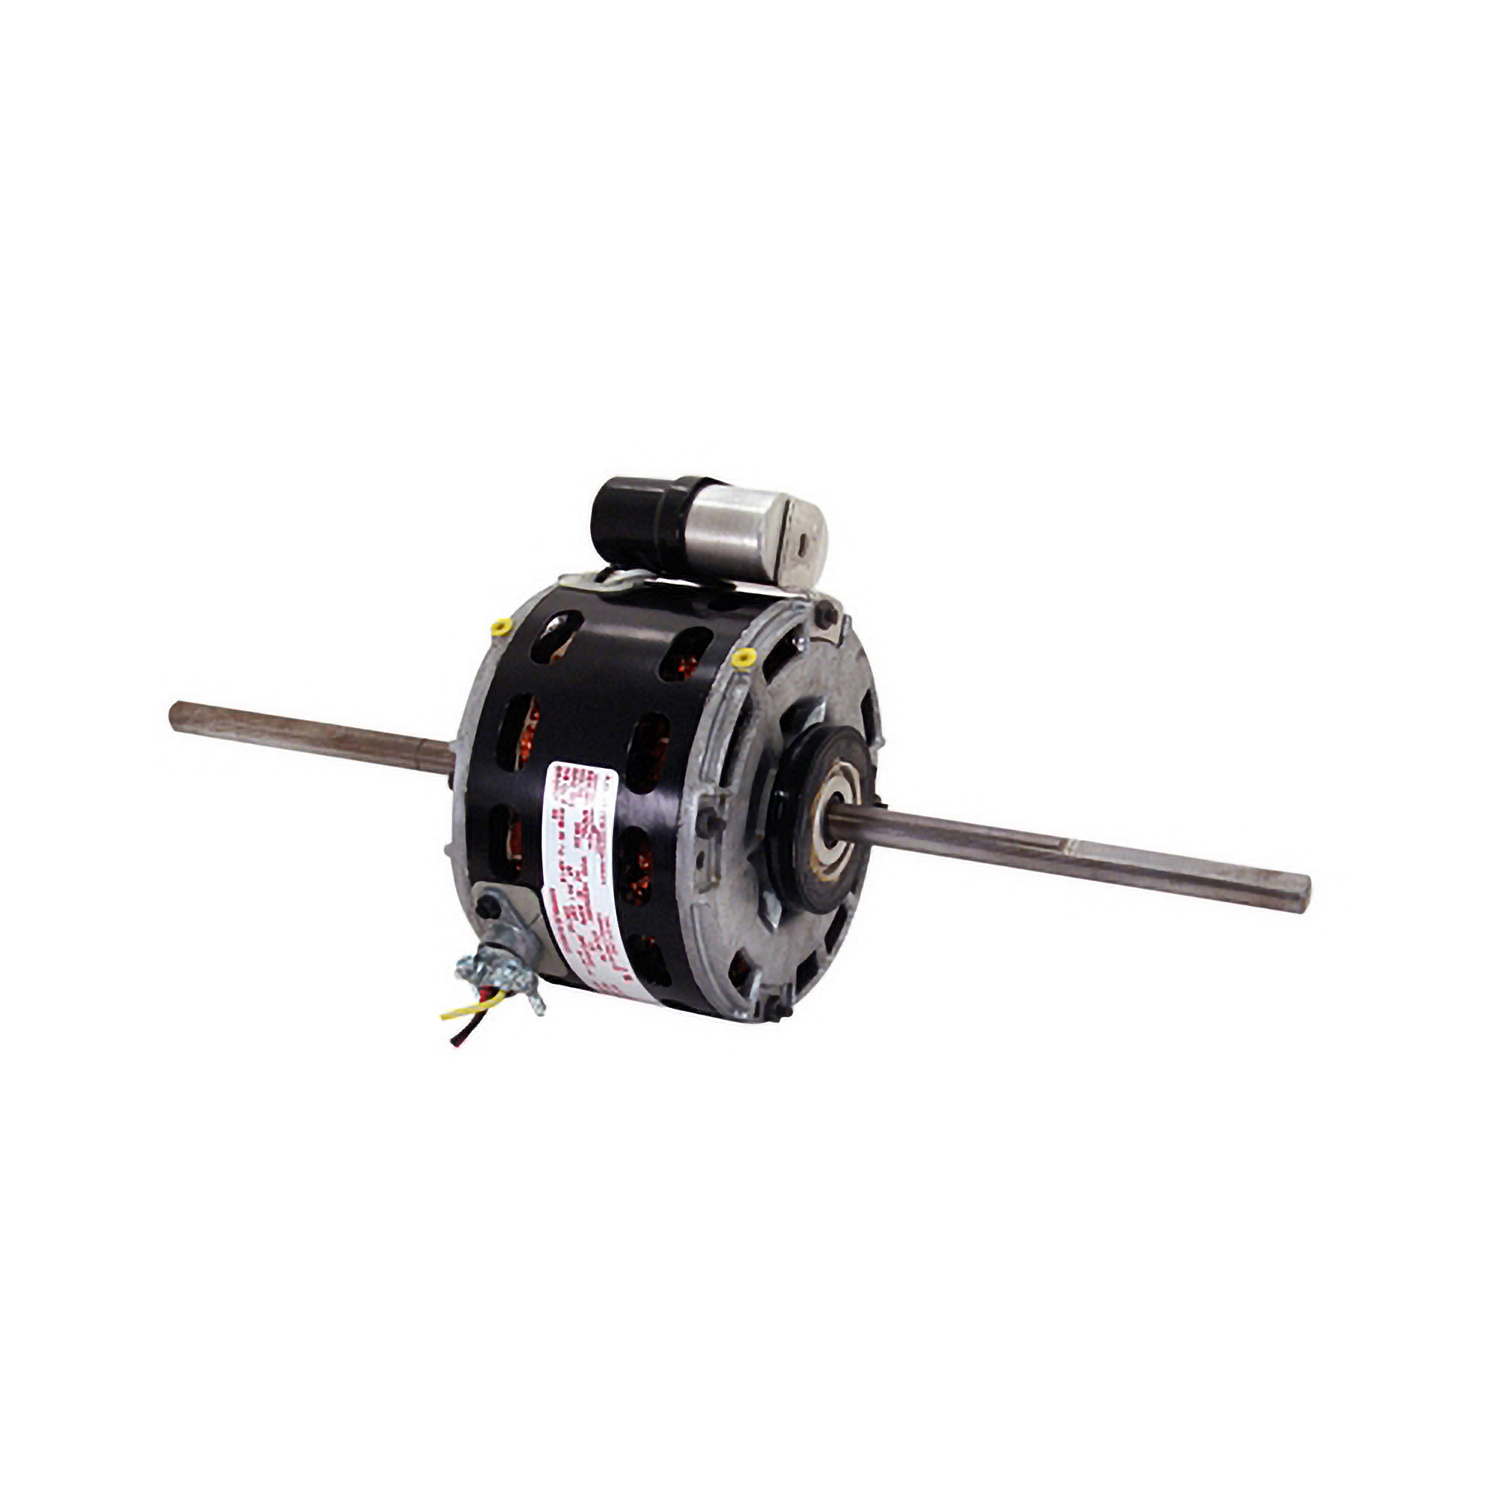 5 Inch Diameter Motors 115 Volts 1060 RPM